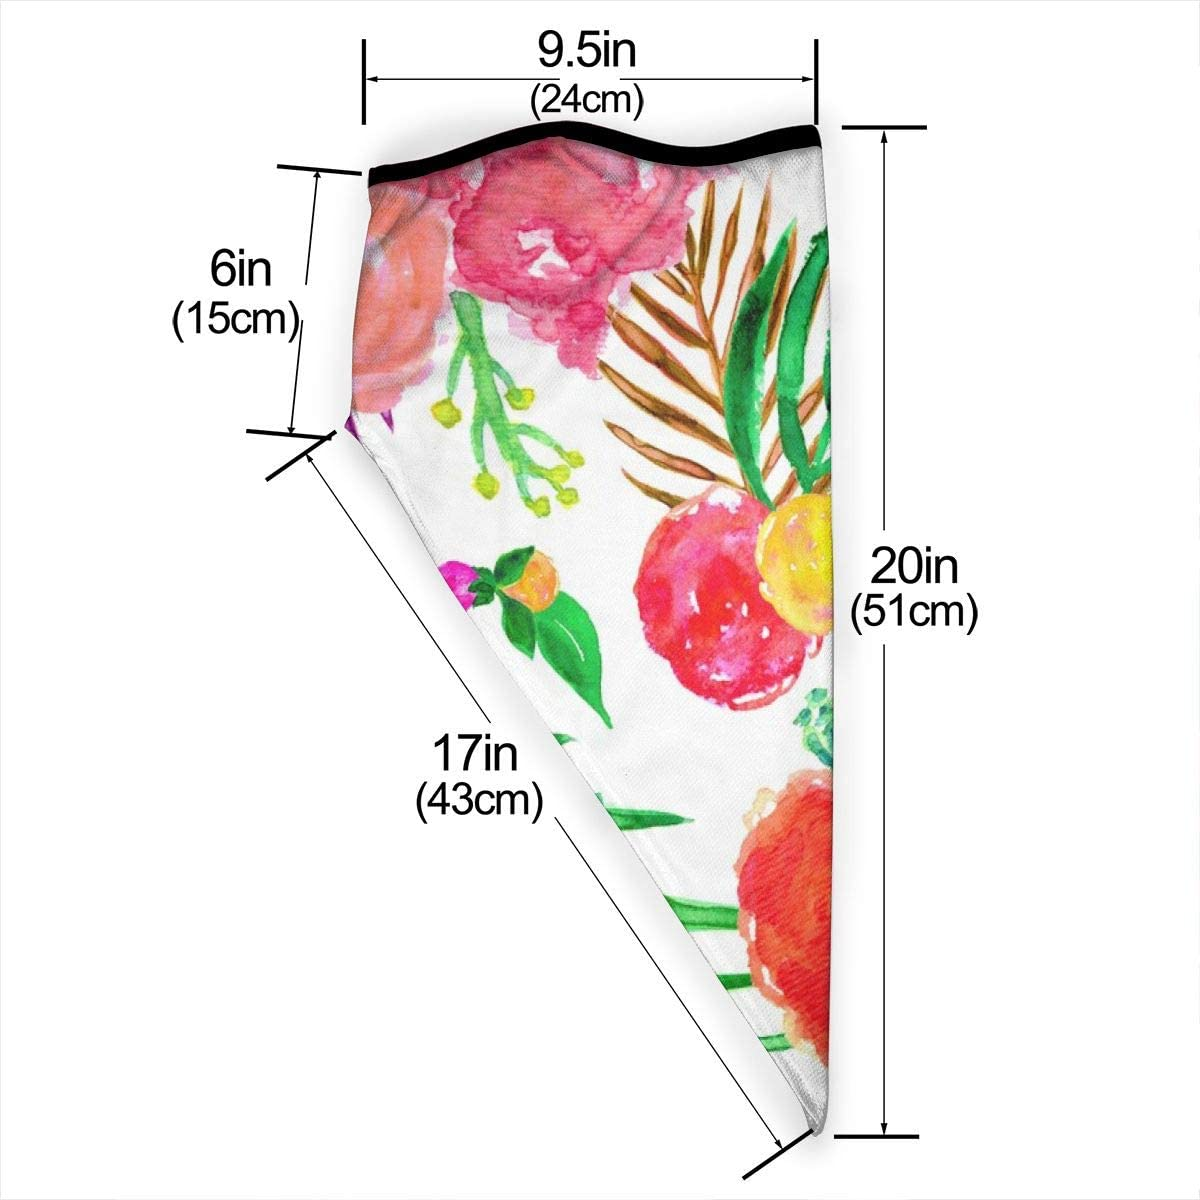 Wind-Resistant Face Mask/& Neck Gaiter,Balaclava Ski Masks,Breathable Tactical Hood,Windproof Face Warmer for Running,Motorcycling,Hiking-Watercolor Tropical Palm Leaf Floral in White